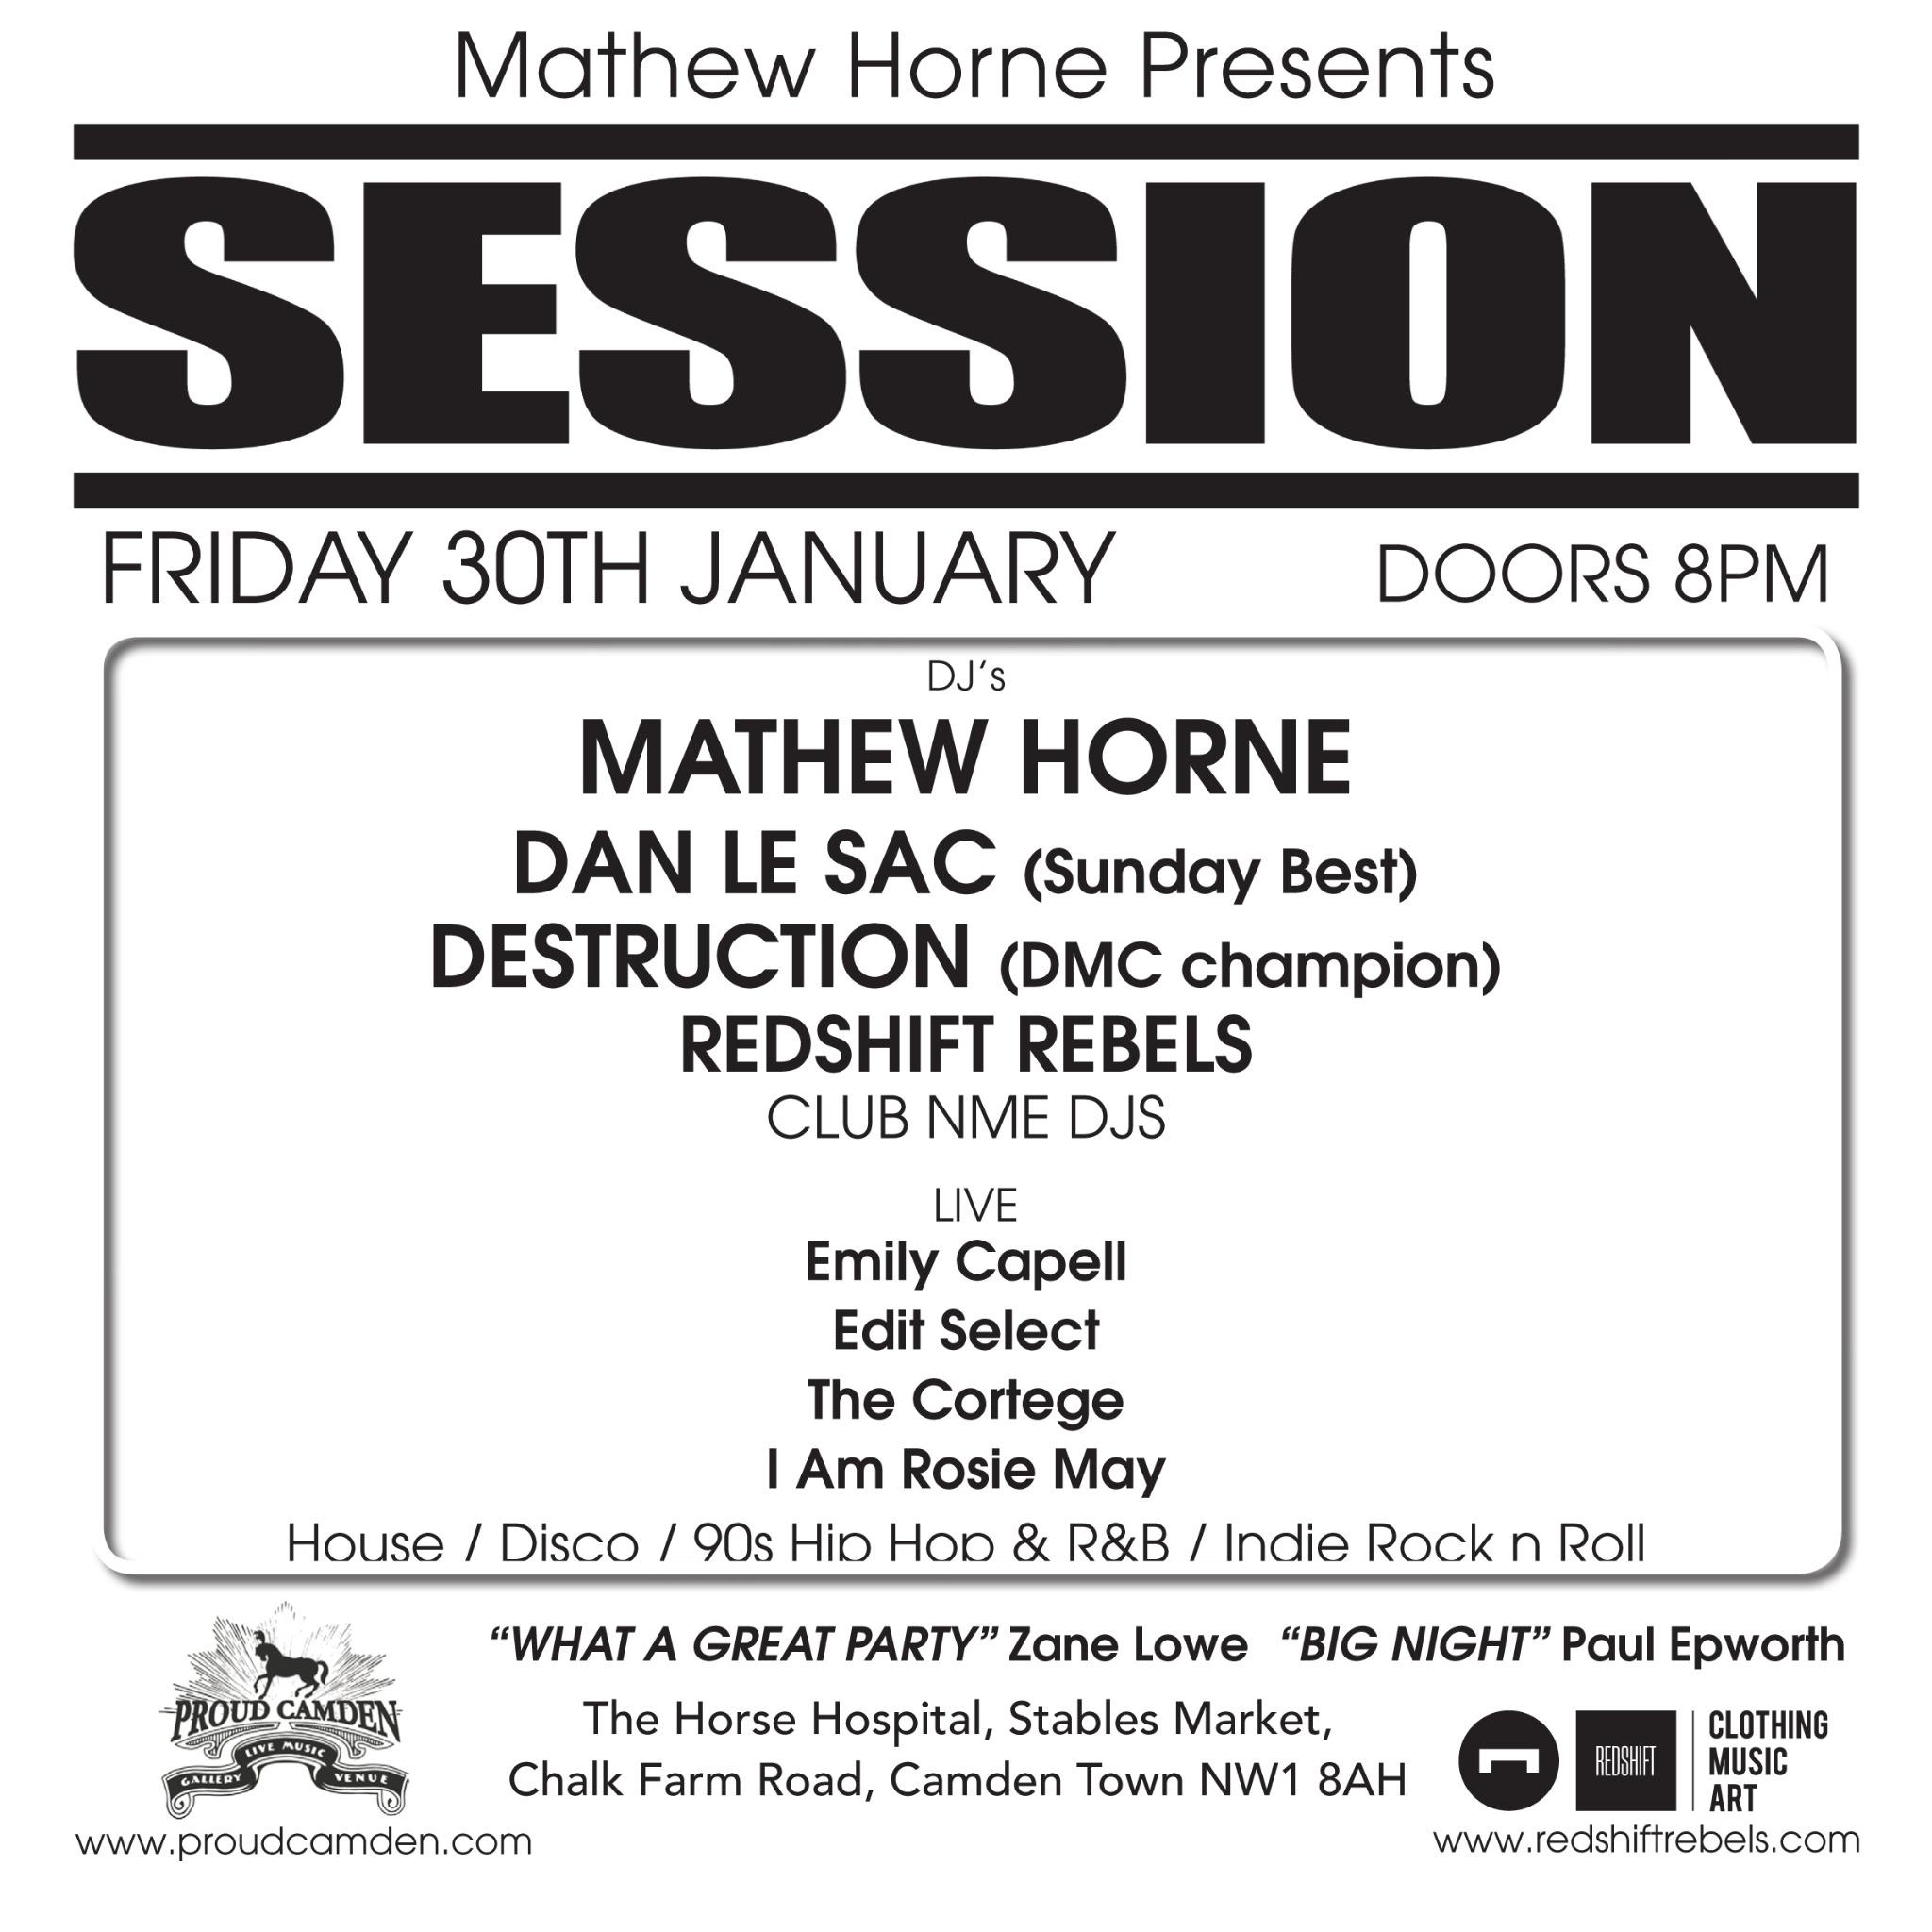 RT @sessionclub: TONITE @mfhorne hosts @sessionclub at @ProudCamden wiv @danlesac  @emilycapell @editselect @thecortegeuk http://t.co/YY3wm…